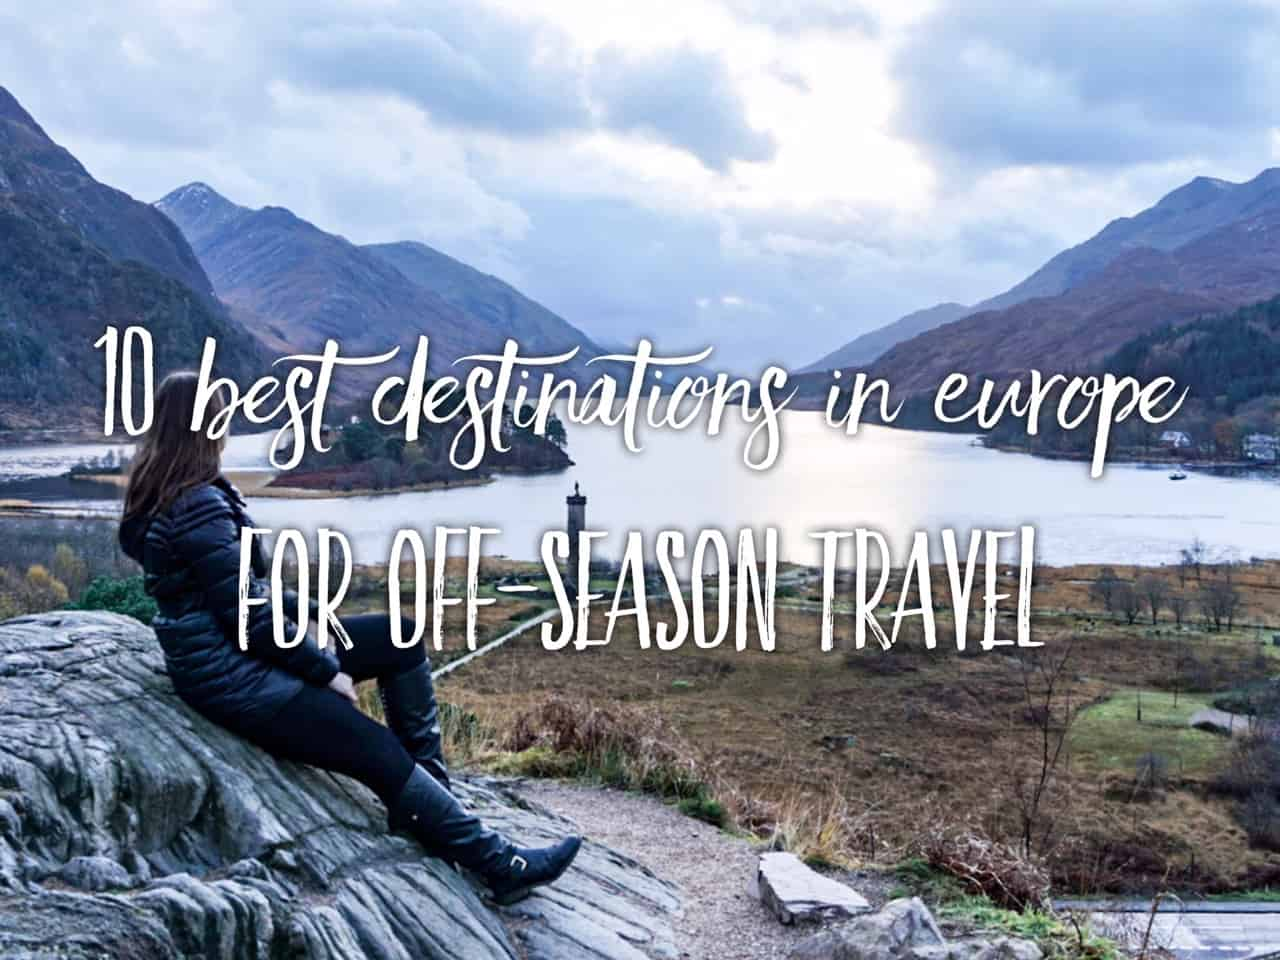 10 best destinations in Europe for off-season travel